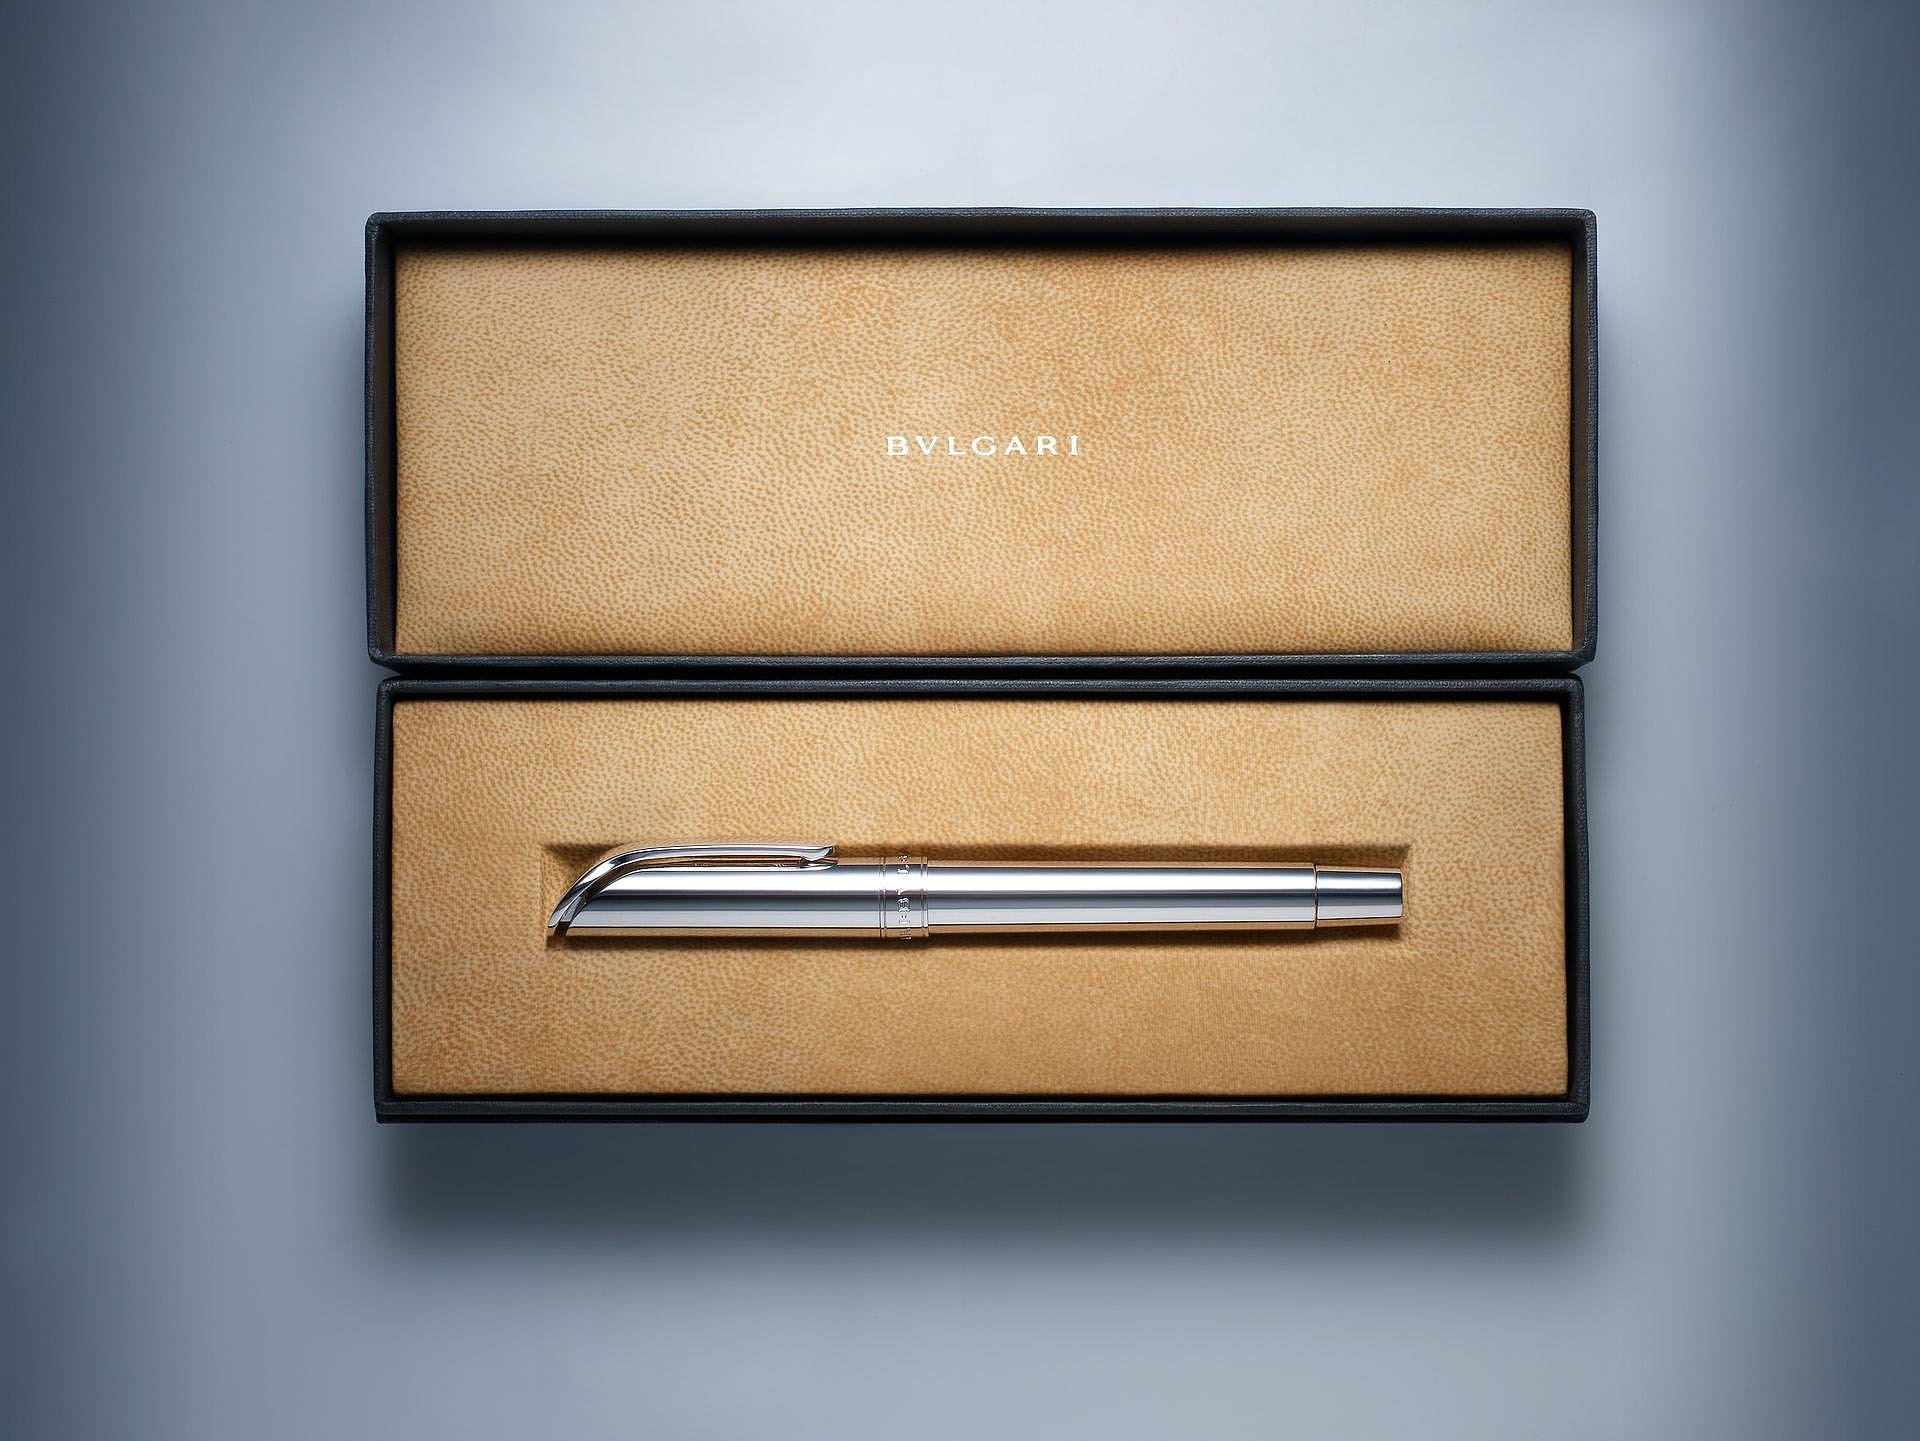 Bvlgari pen. (3 of 6)